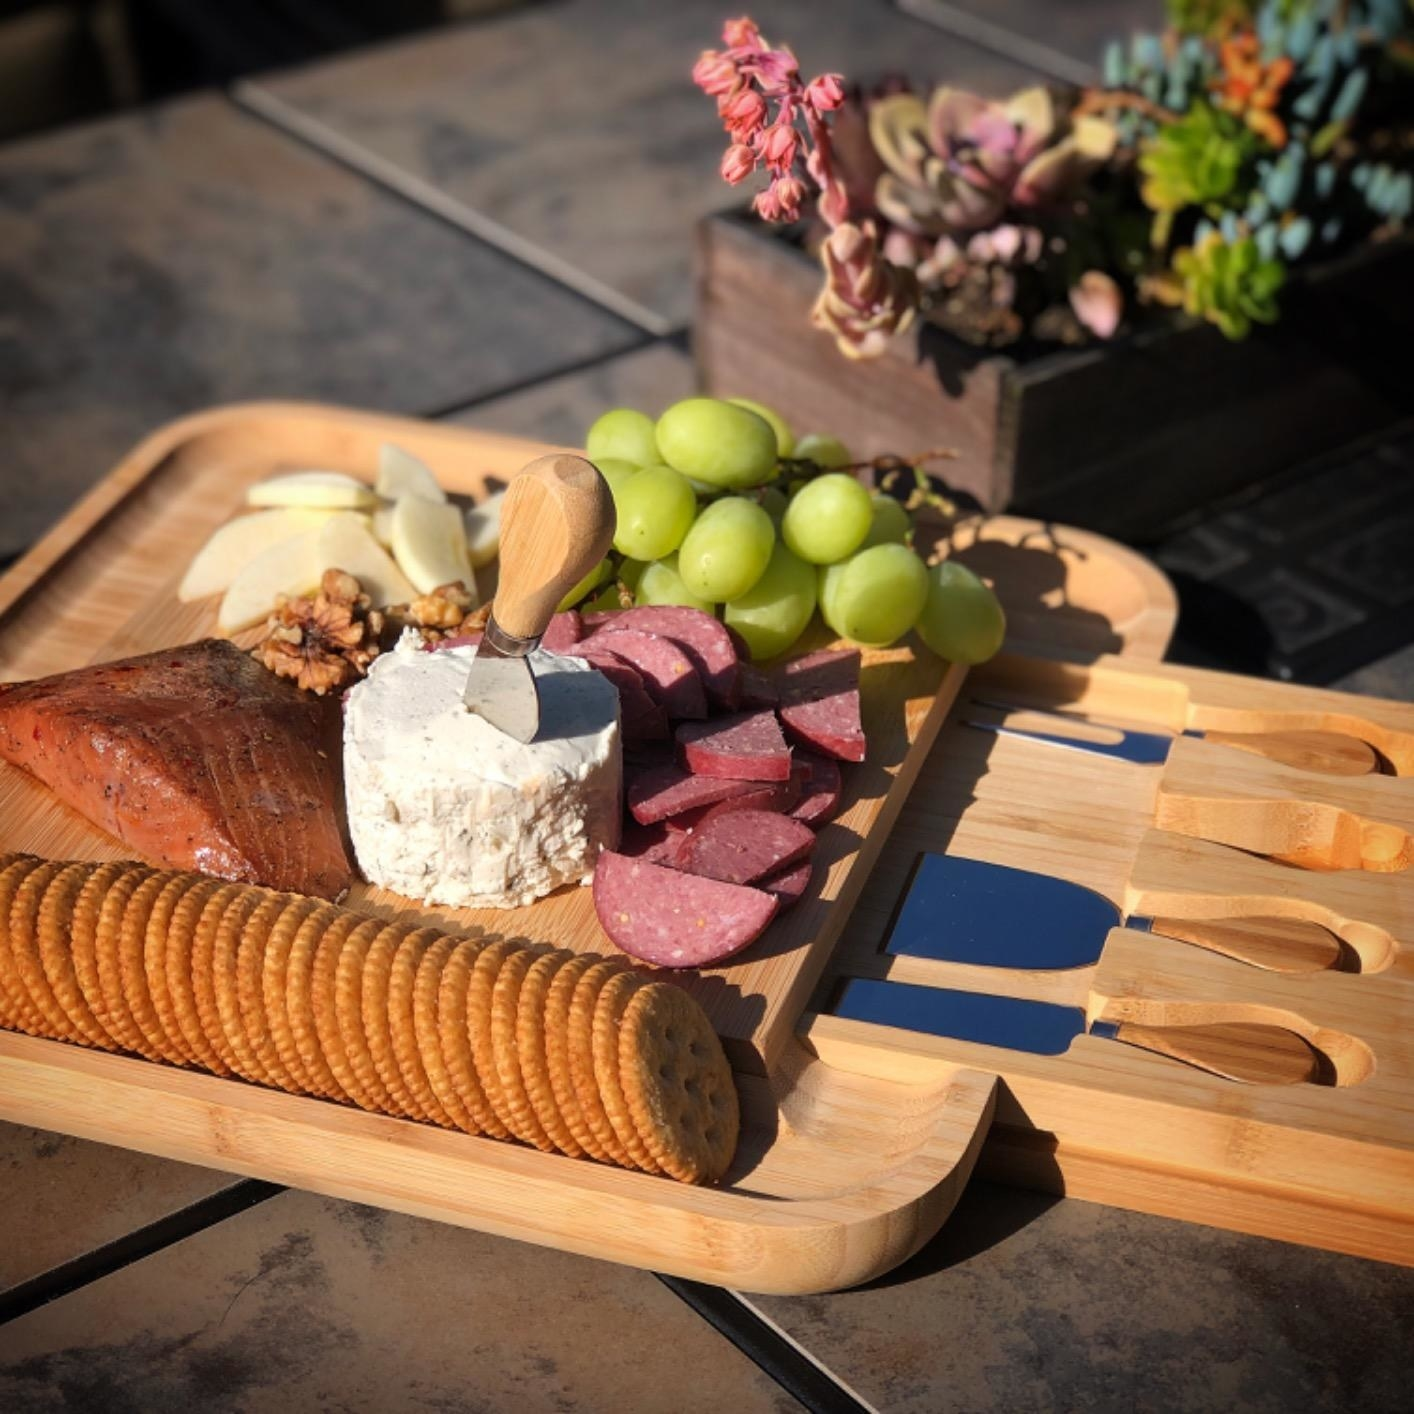 Reviewer photo of meats, cheeses, fruits and crackers placed on charcuterie board